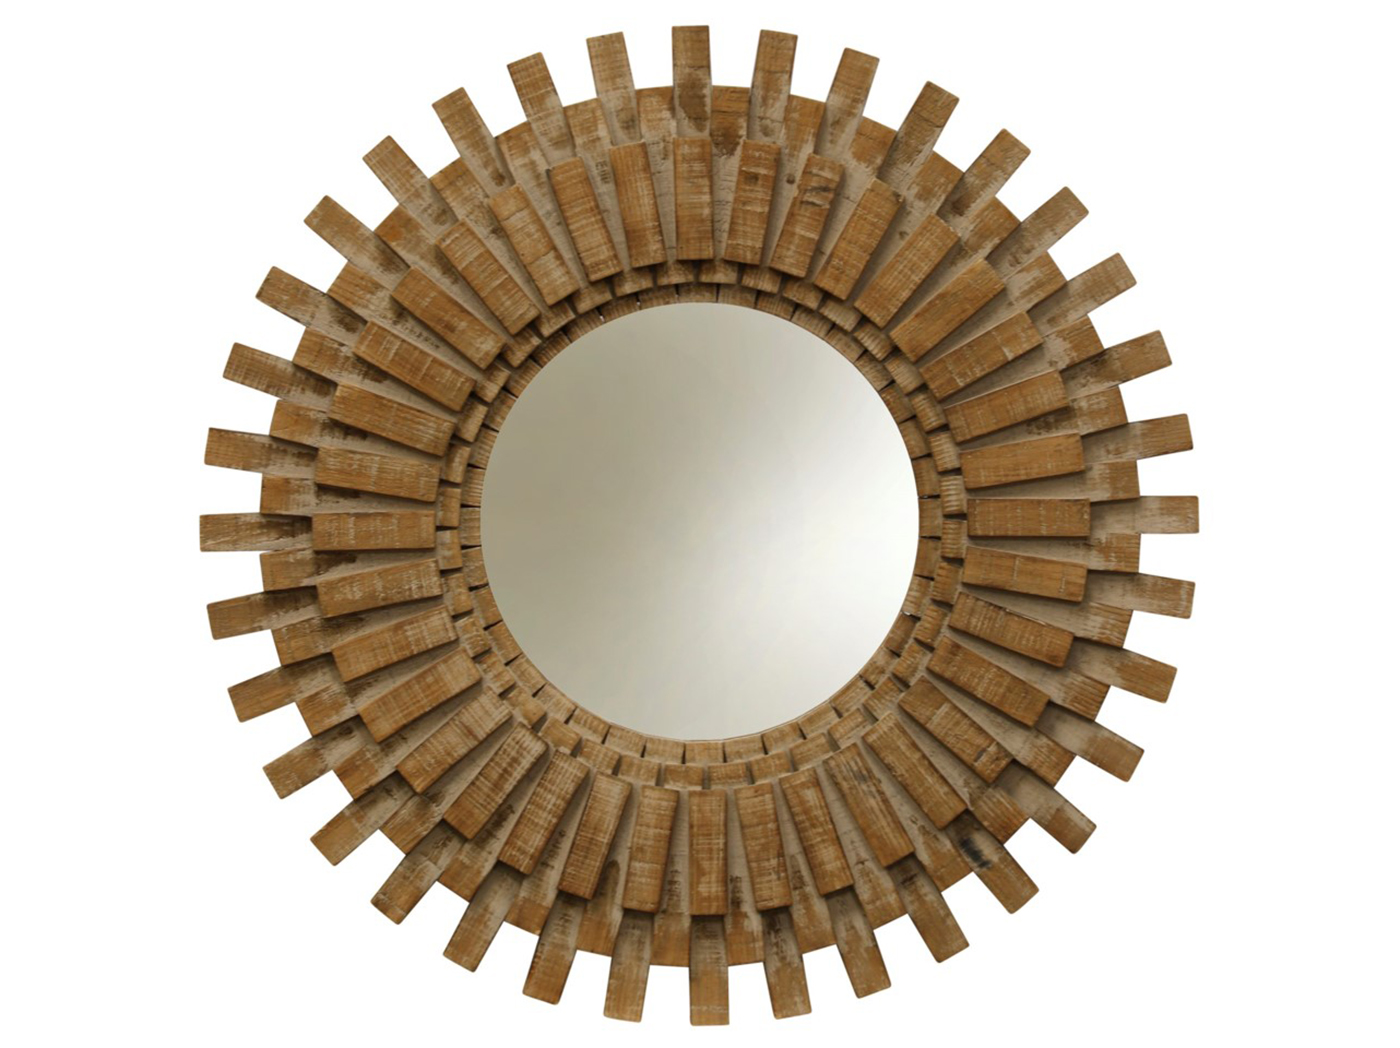 Sunburst Rustic Wood Round Wall Mirror 34""